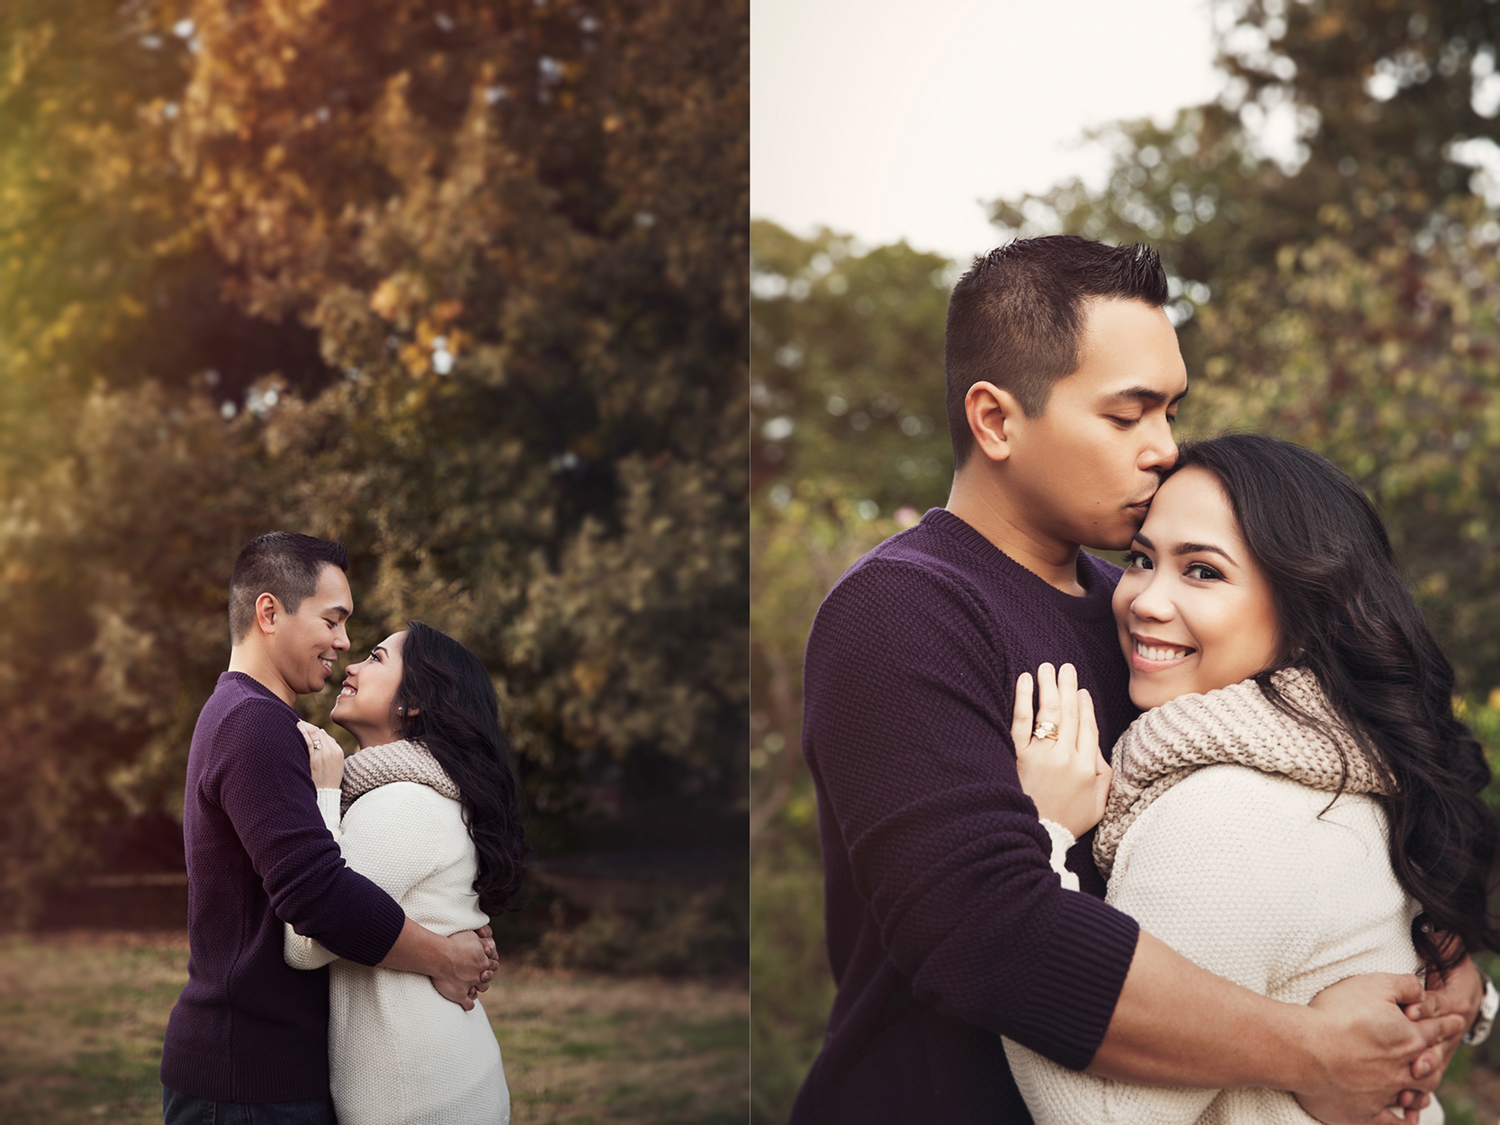 Creative and Modern Lifestyle Portraits for Couples by Mayumi Acosta photography in Sacramento CA